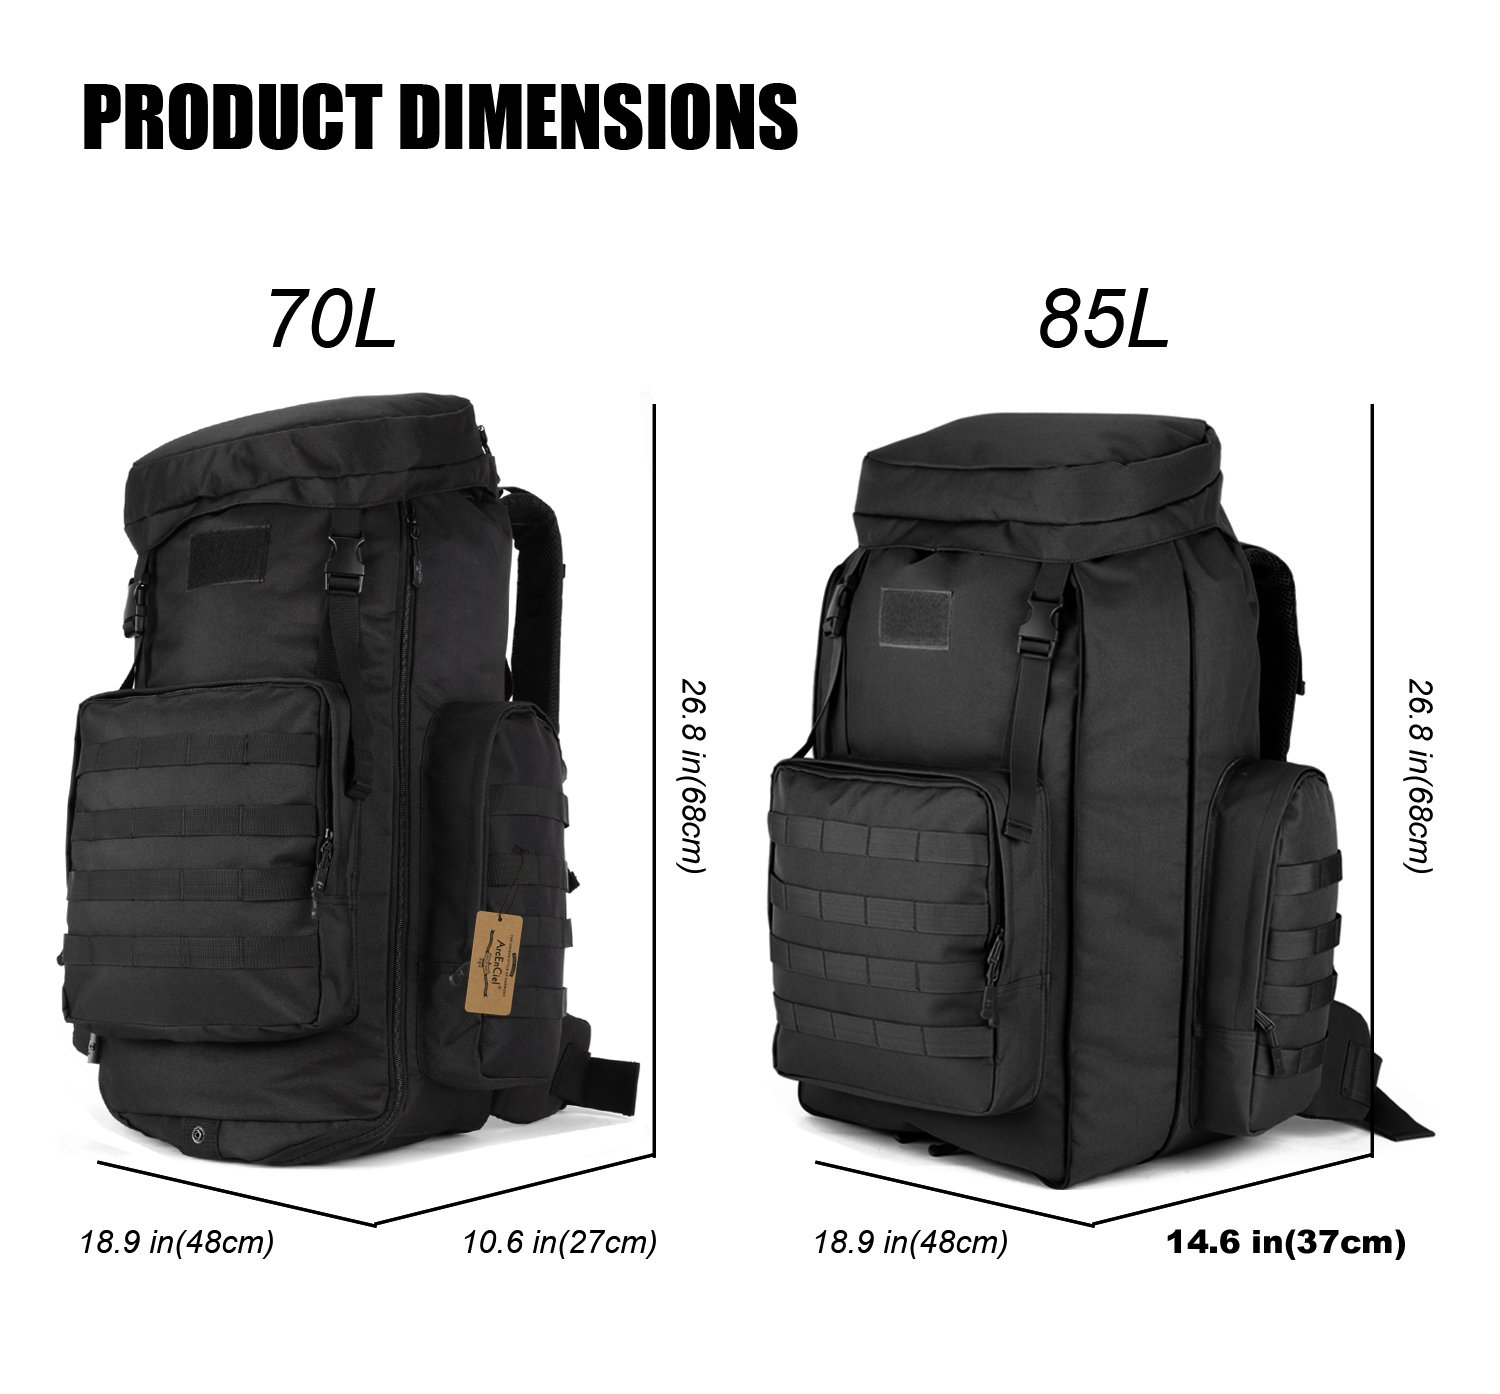 ArcEnCiel 70-85L Large Capacity Tactical Travel Backpack MOLLE Rucksack Outdoor Travel Bag for Travelling Trekking Camping Hiking Hunting -Rain Cover Included (Black) by ArcEnCiel (Image #4)